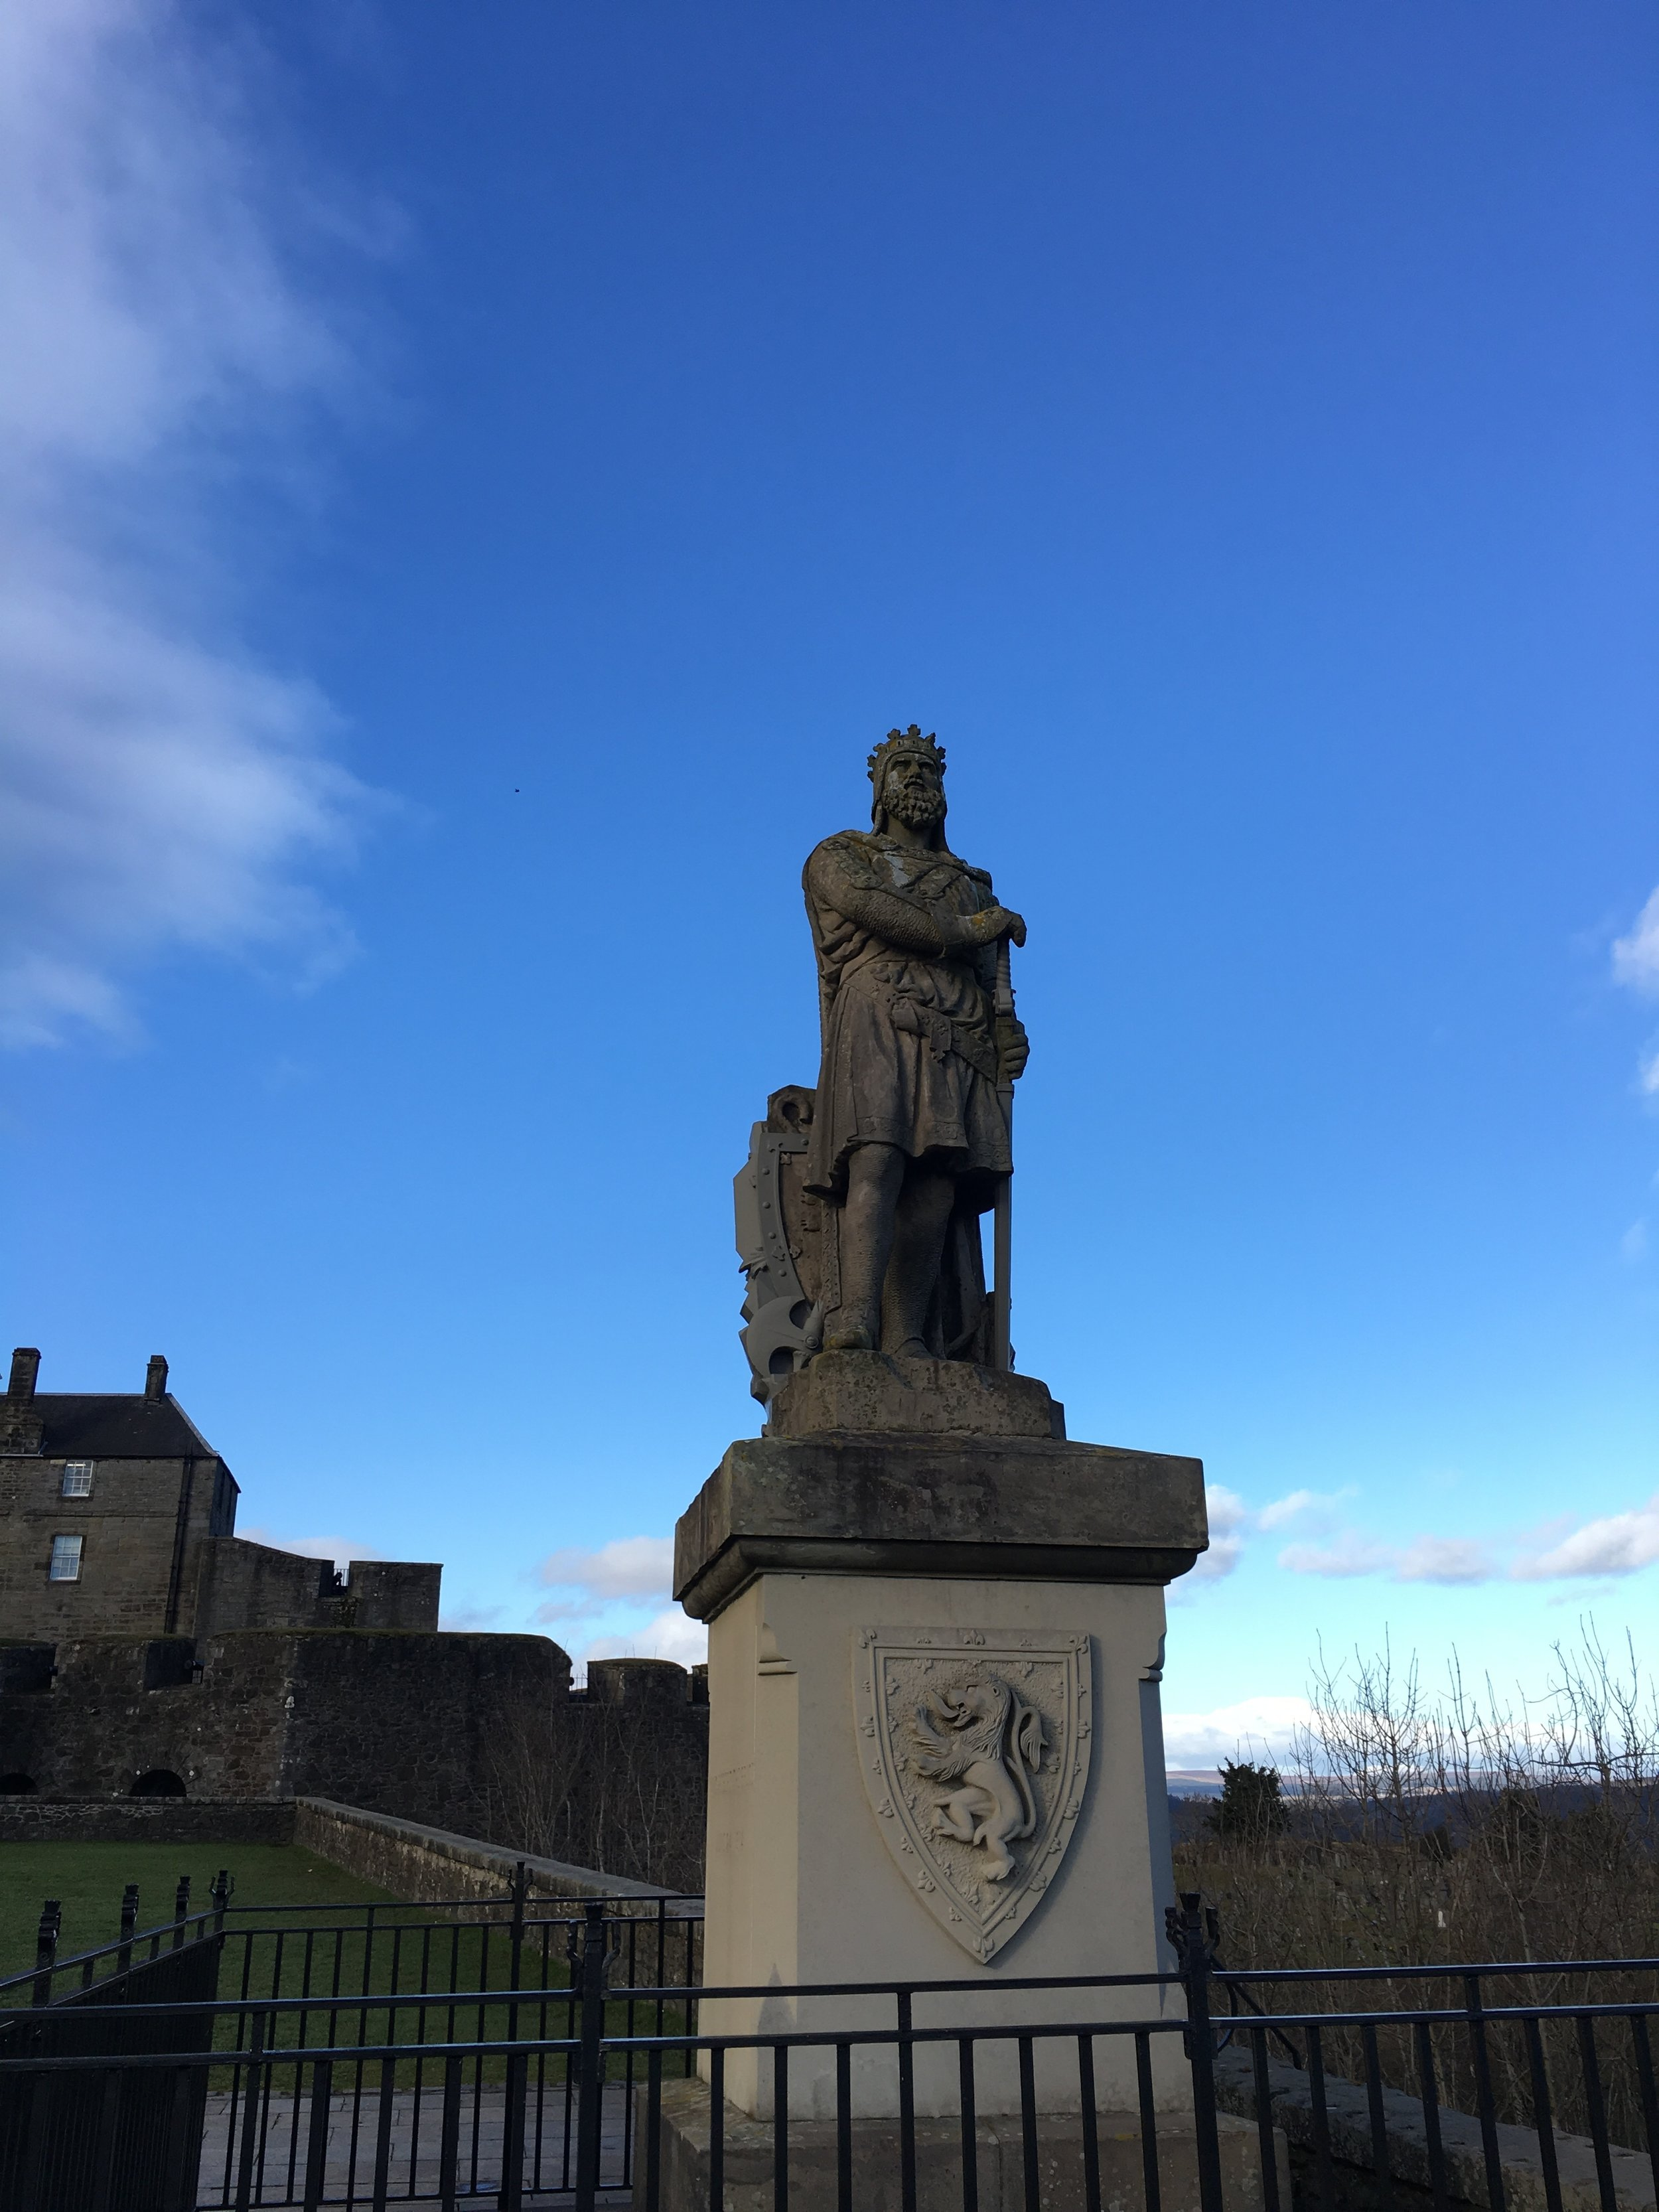 A monument to Robert the Bruce outside Stirling Castle.